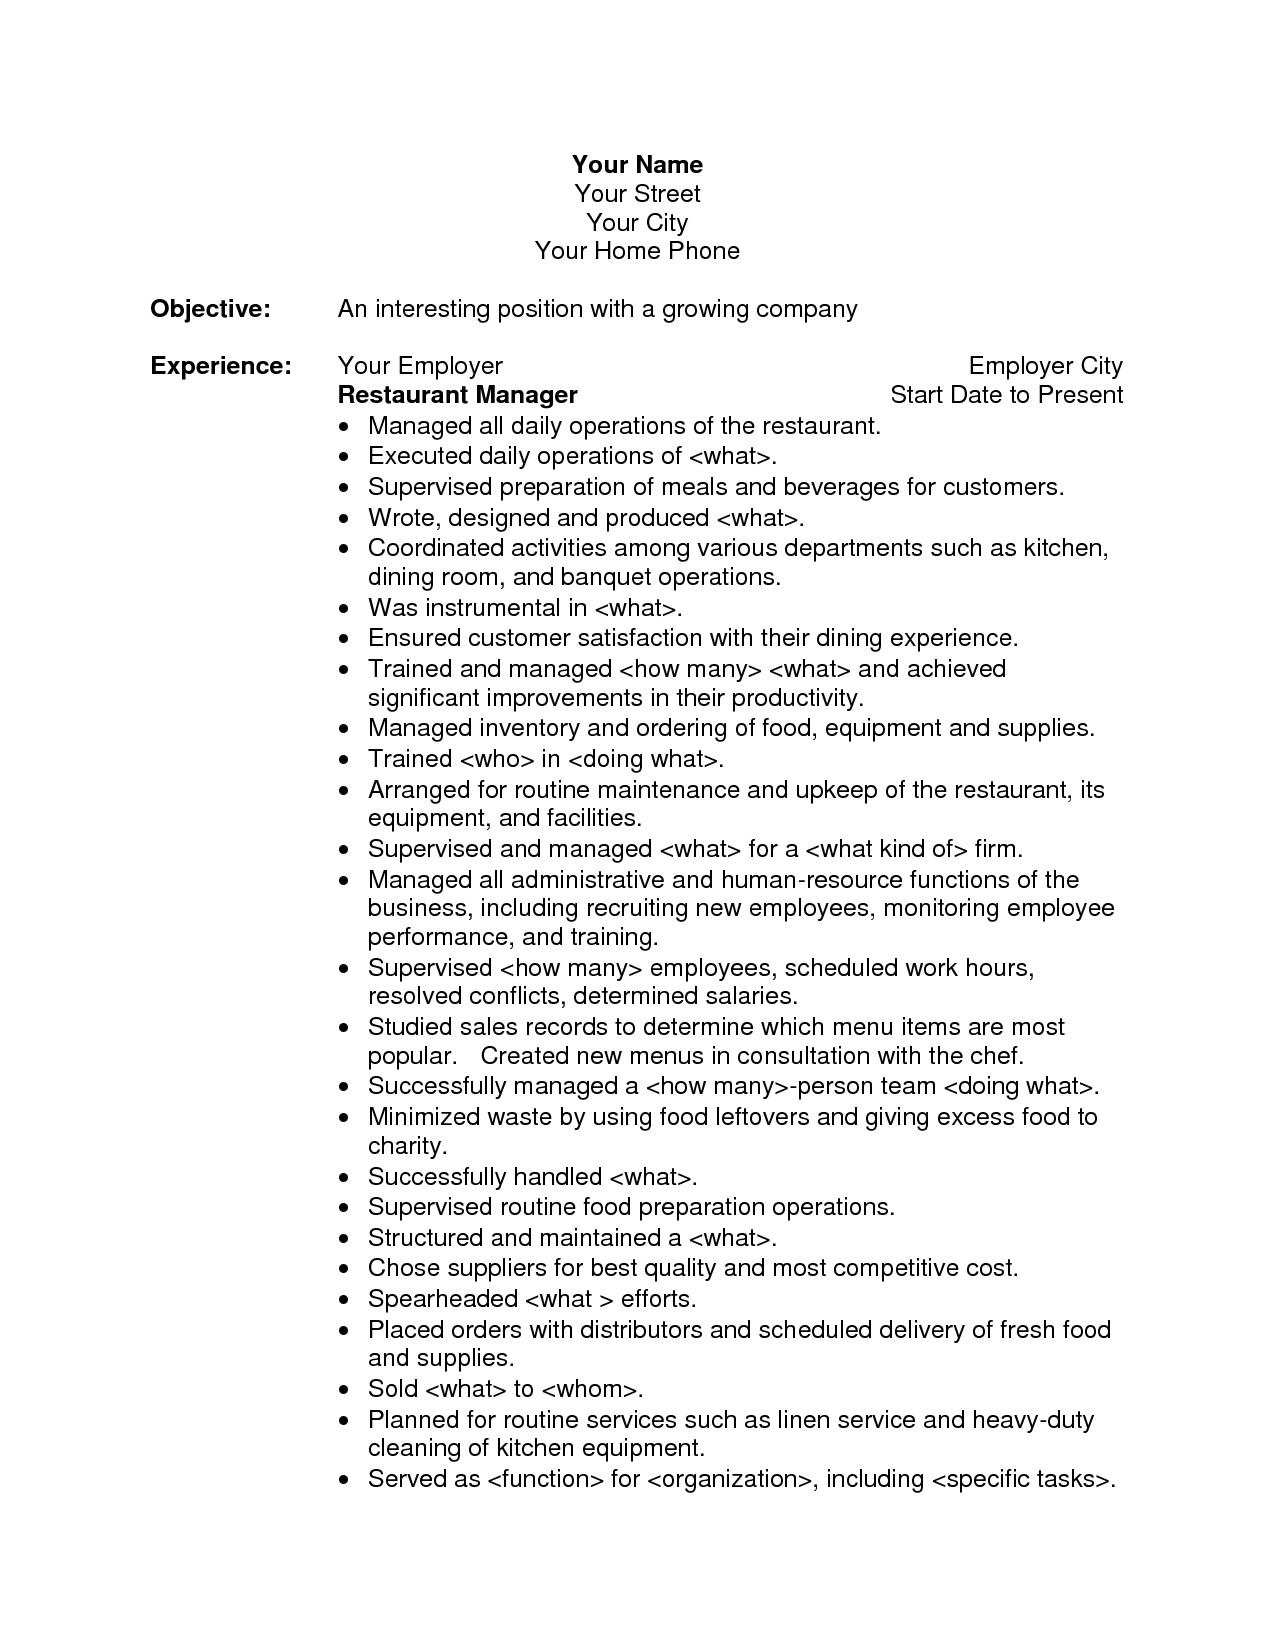 Sample Of Objectives In Resume for Hotel and Restaurant Management Restaurant Manager Resume Objective the Best Resume